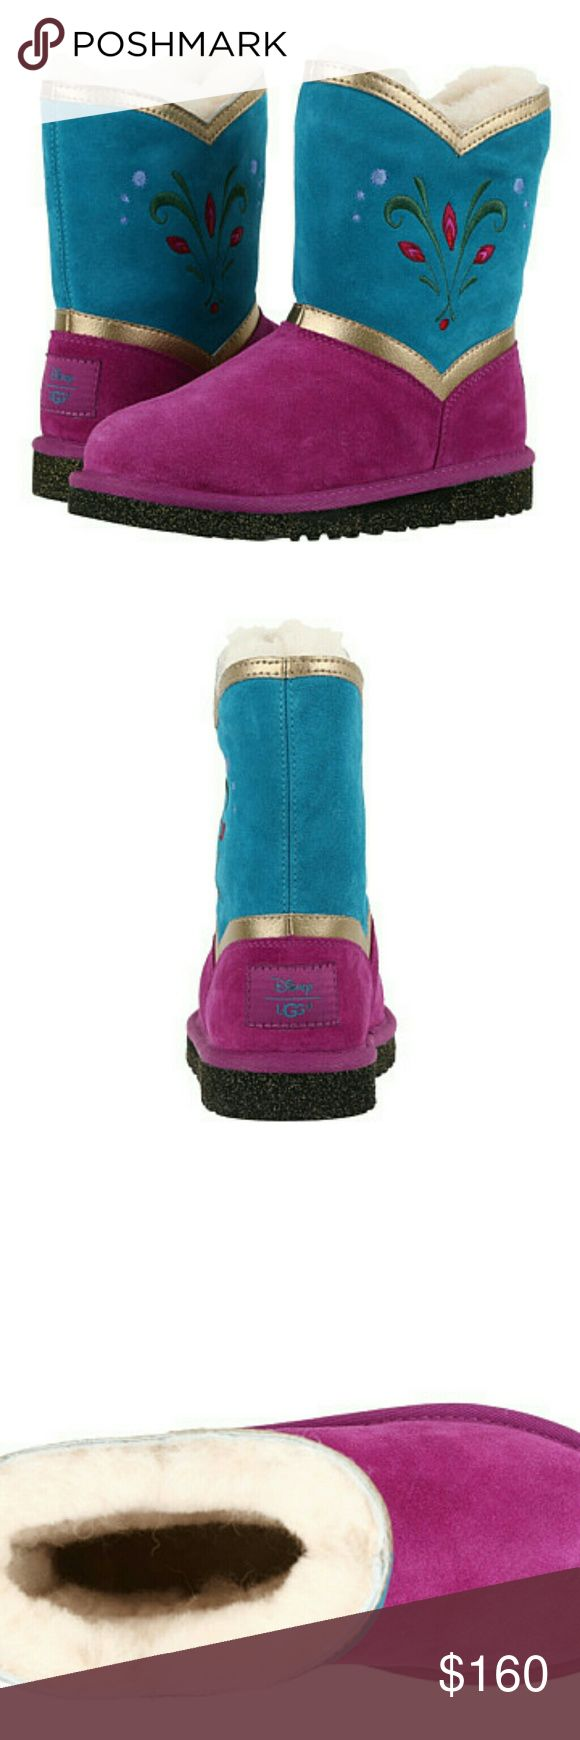 New Ugg 'Elsa Coronation' BRAND NEW 100% authentic pair of ' Ellee Leather ' Ugg boots.  I have sizes 3Y little kid and 4Y big kid.  They are both brand new and come with the original box, wrapping paper and authenticity cards! I originally paid 185$ .   If you have any questions please let me know thank you!     tags: boots boot bootie uggs Australia butte warm shoes youth kids 2.5 3 3.5 marmot adidas Canada goose Northface nike warm weather Shoes Boots